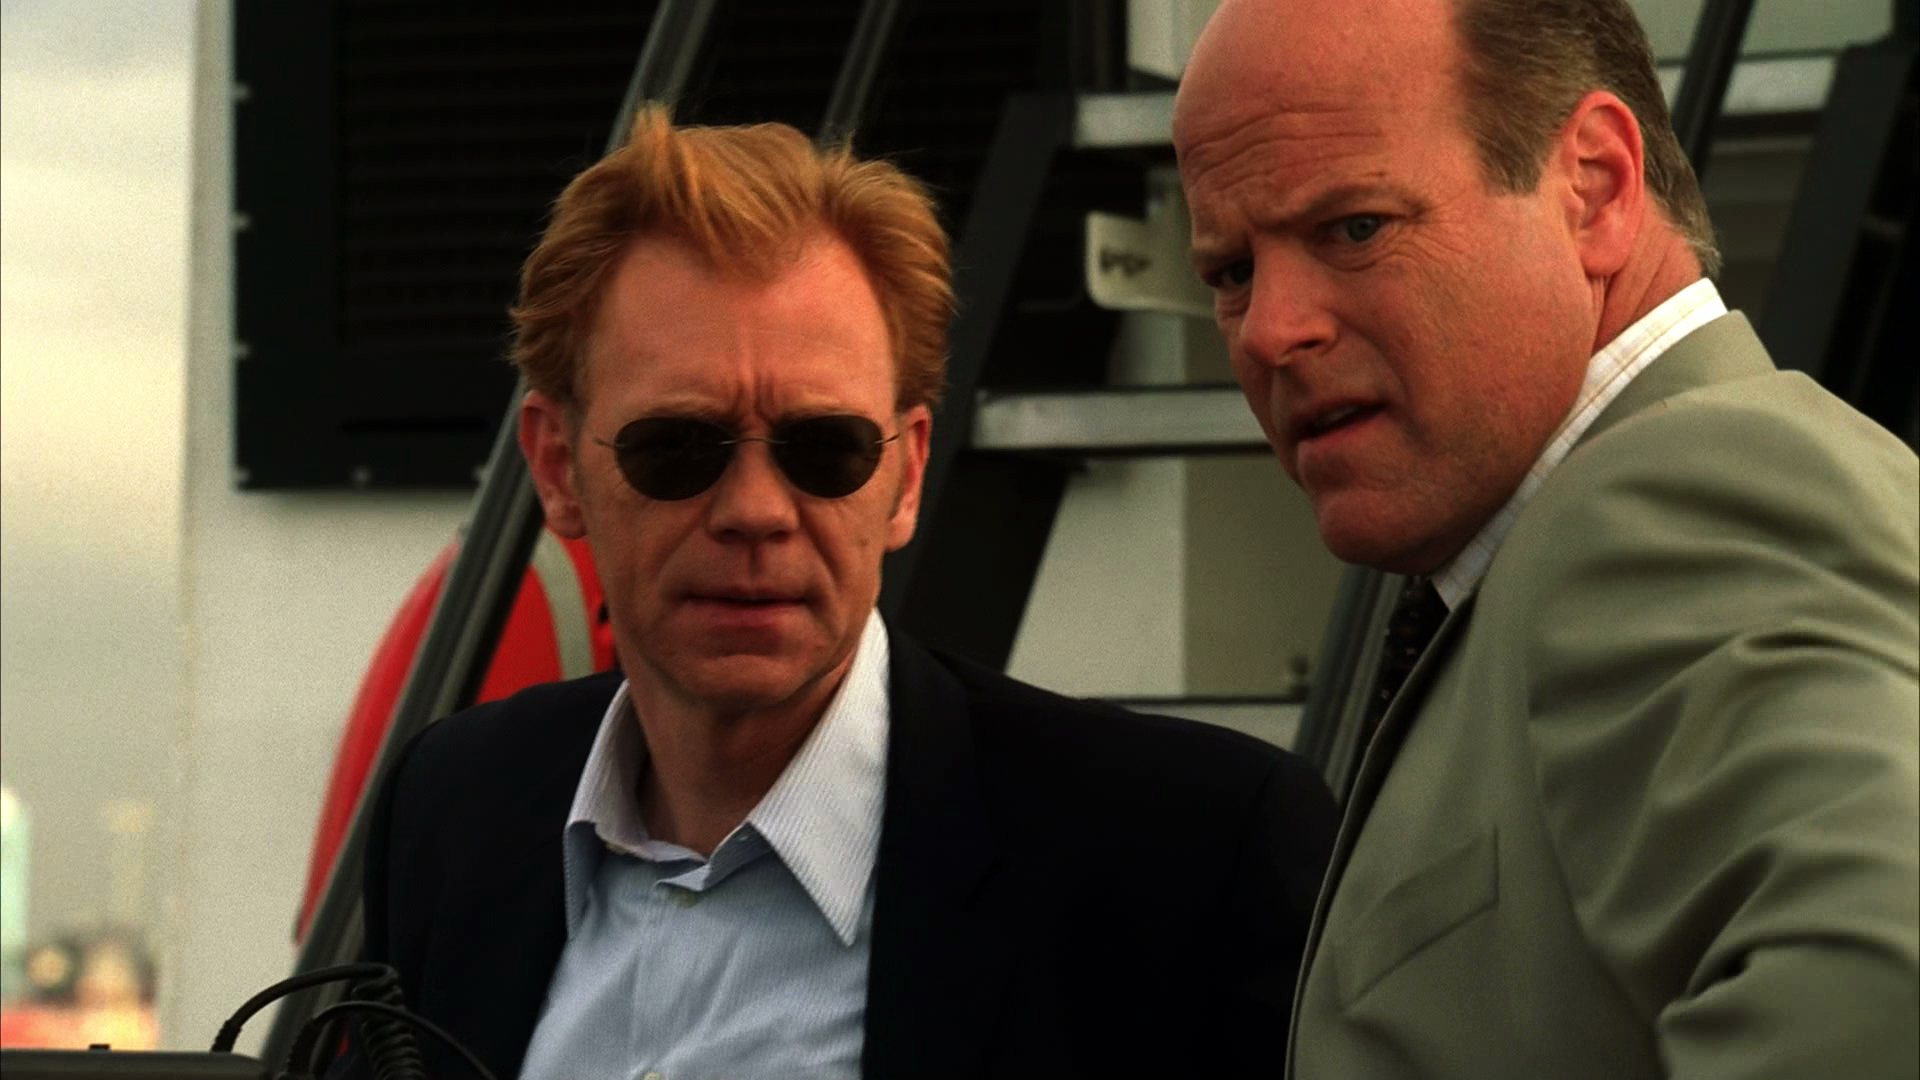 Watch CSI: Miami Season 3 Episode 9: Pirated - Full show on CBS All Access